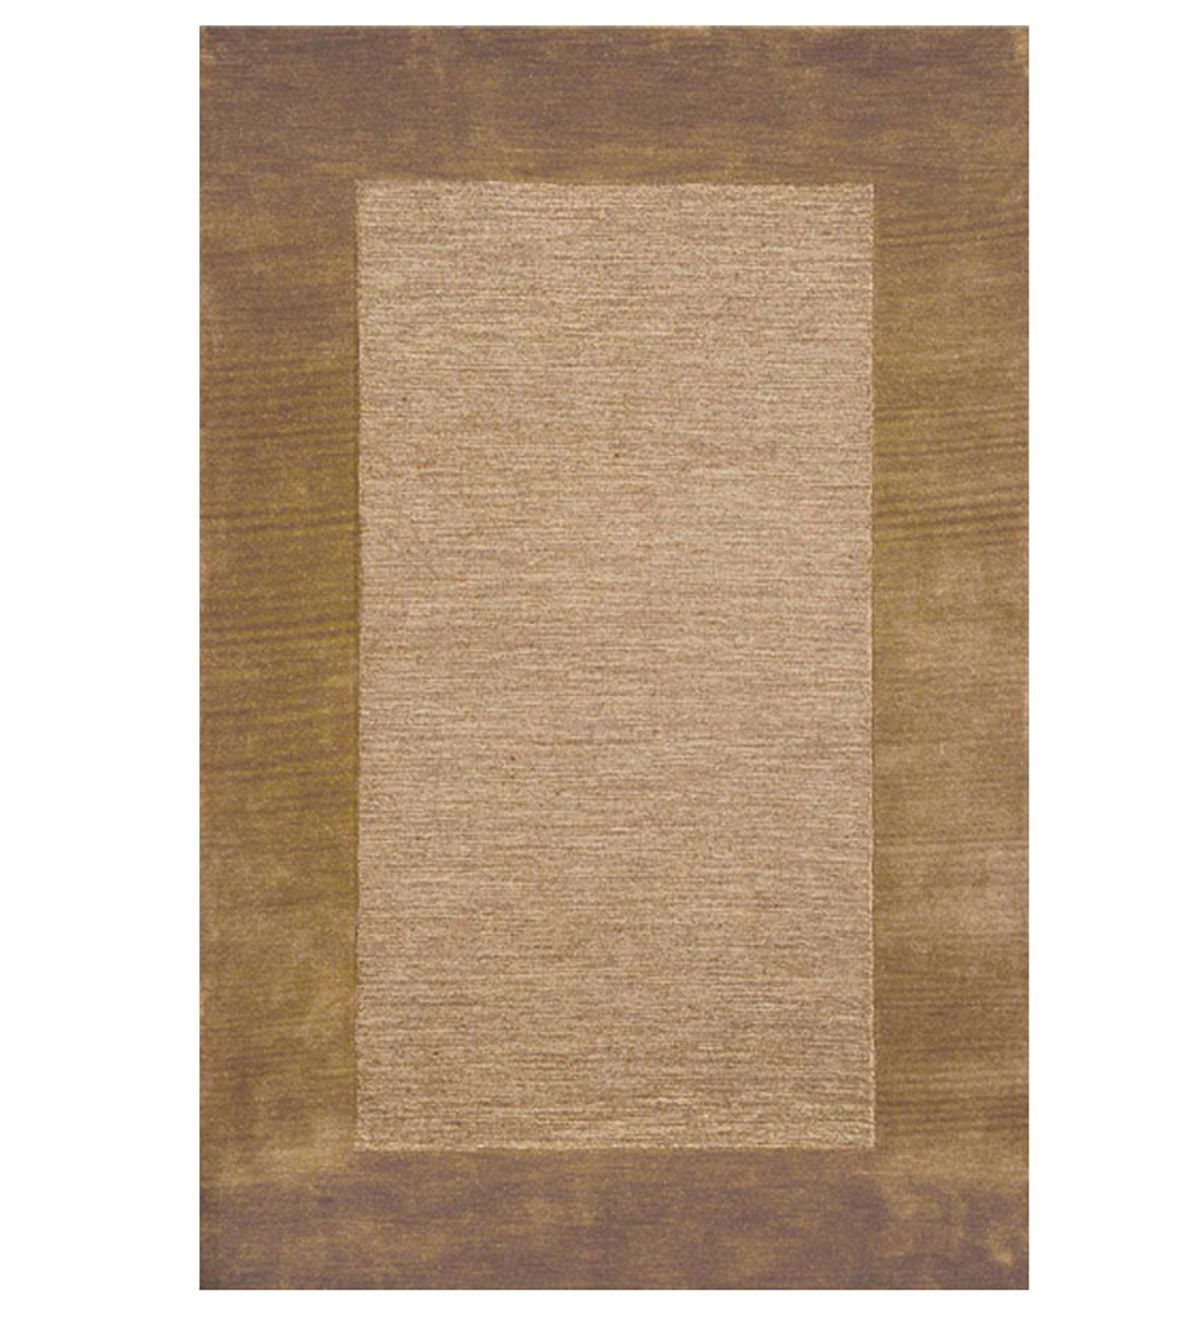 Madrid Banded Wool Hearth Rug